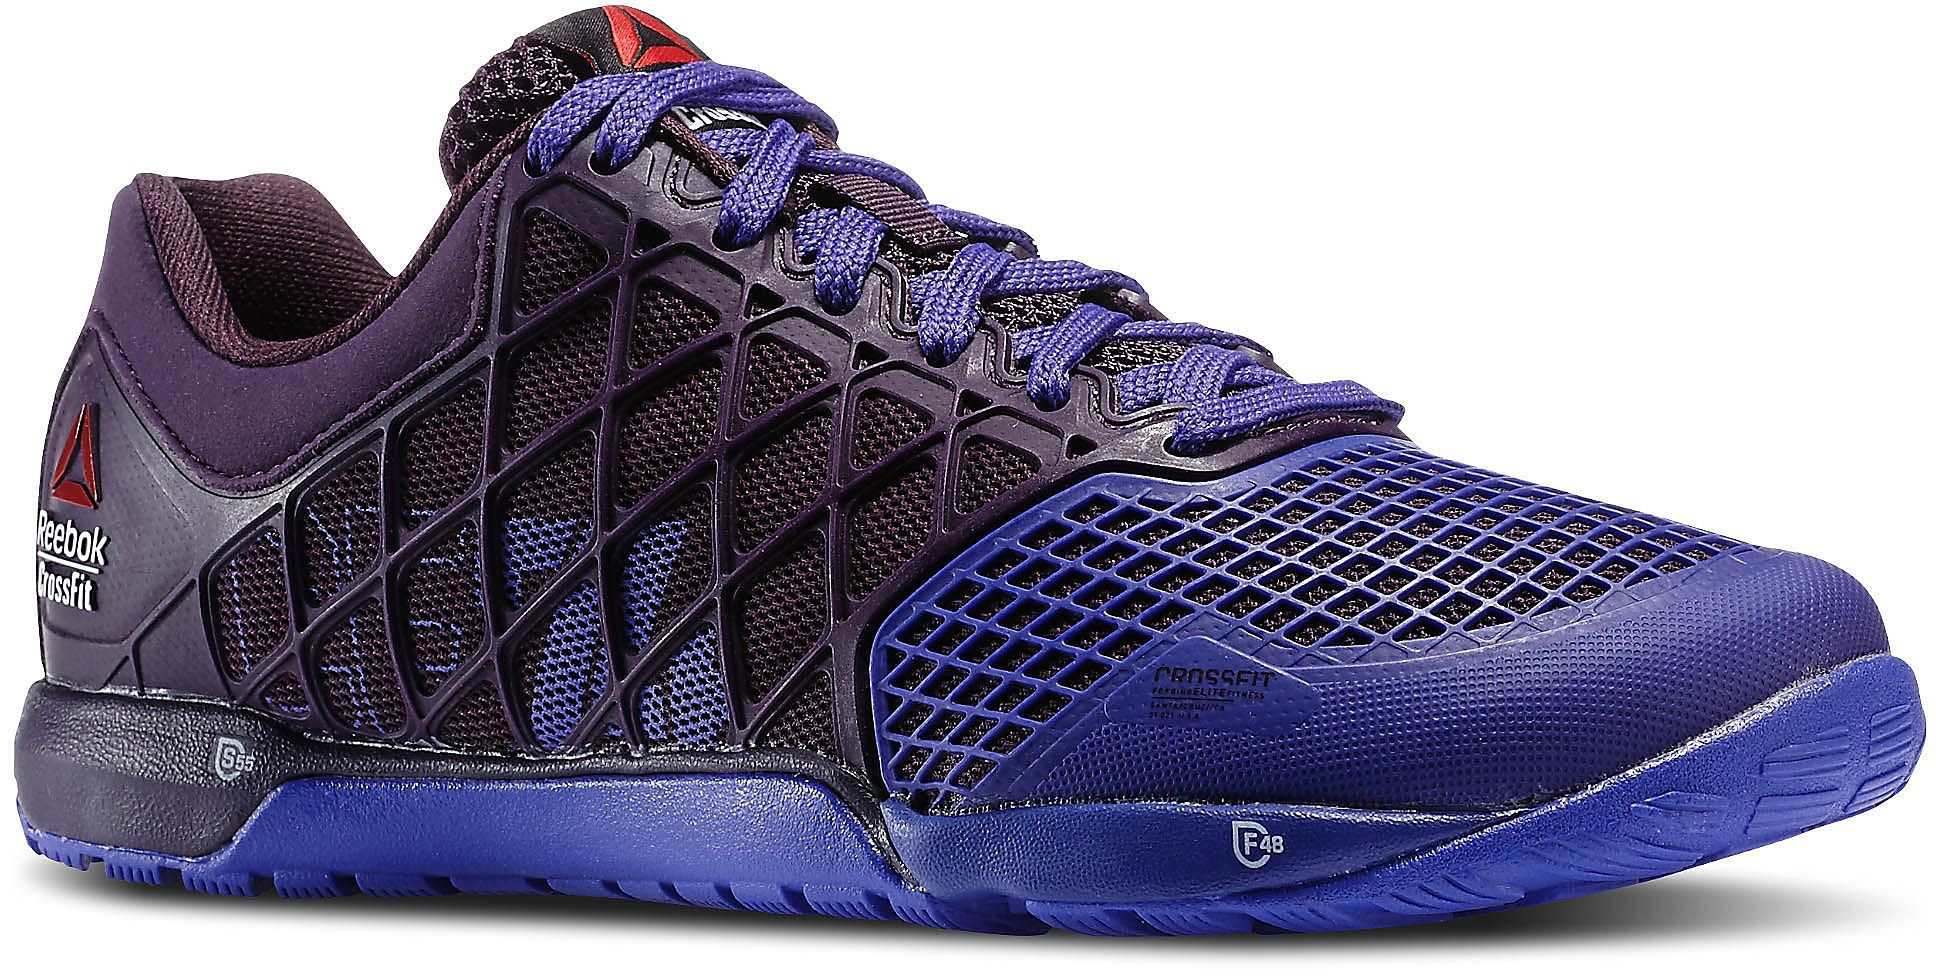 f8fe968edd Reebok CrossFit Nano 4.0s - The Shoe Mart